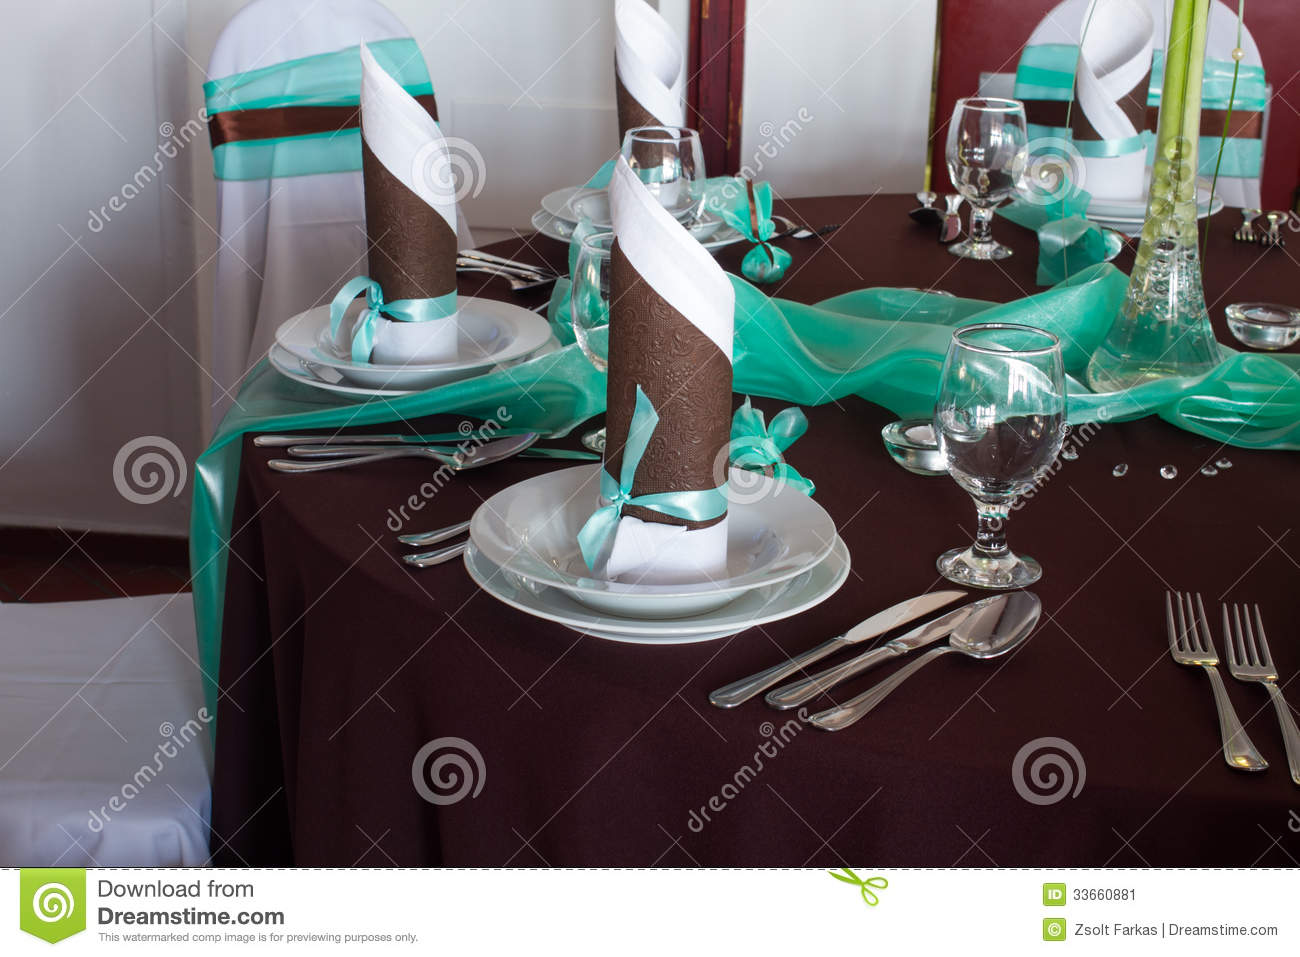 Wedding Table Set With Decoration For Fine Dining Or